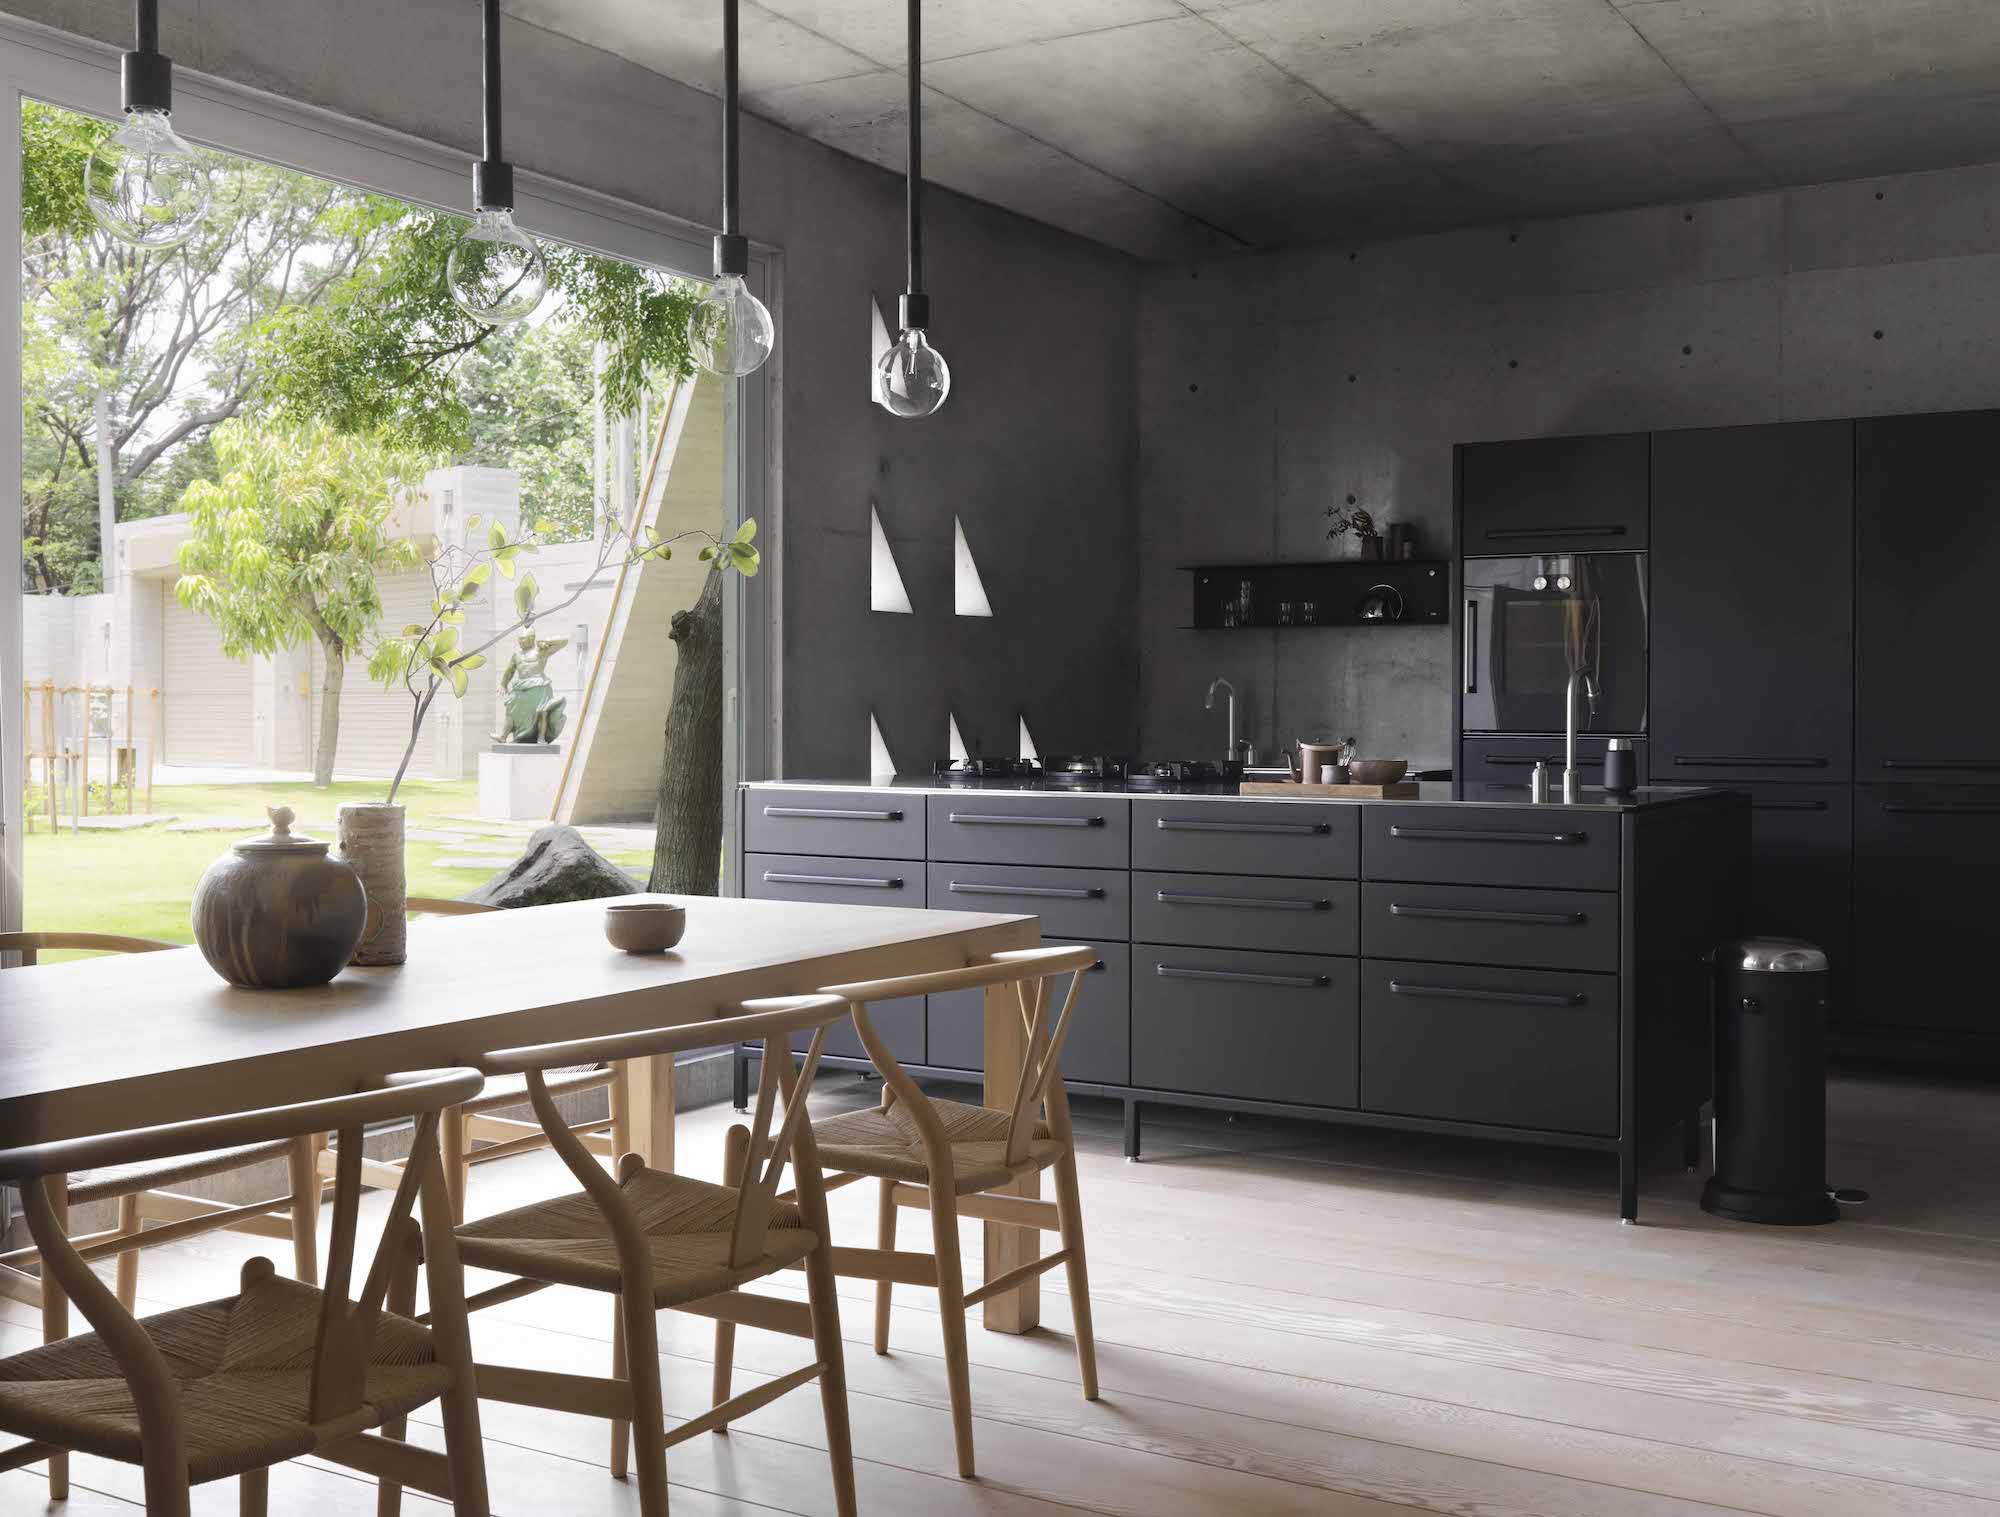 The combined dining and kitchen space occupies the ground floor, with open access to the garden. When he started planning the kitchen area, Chiang was pleased to discover the Vipp Kitchen src=